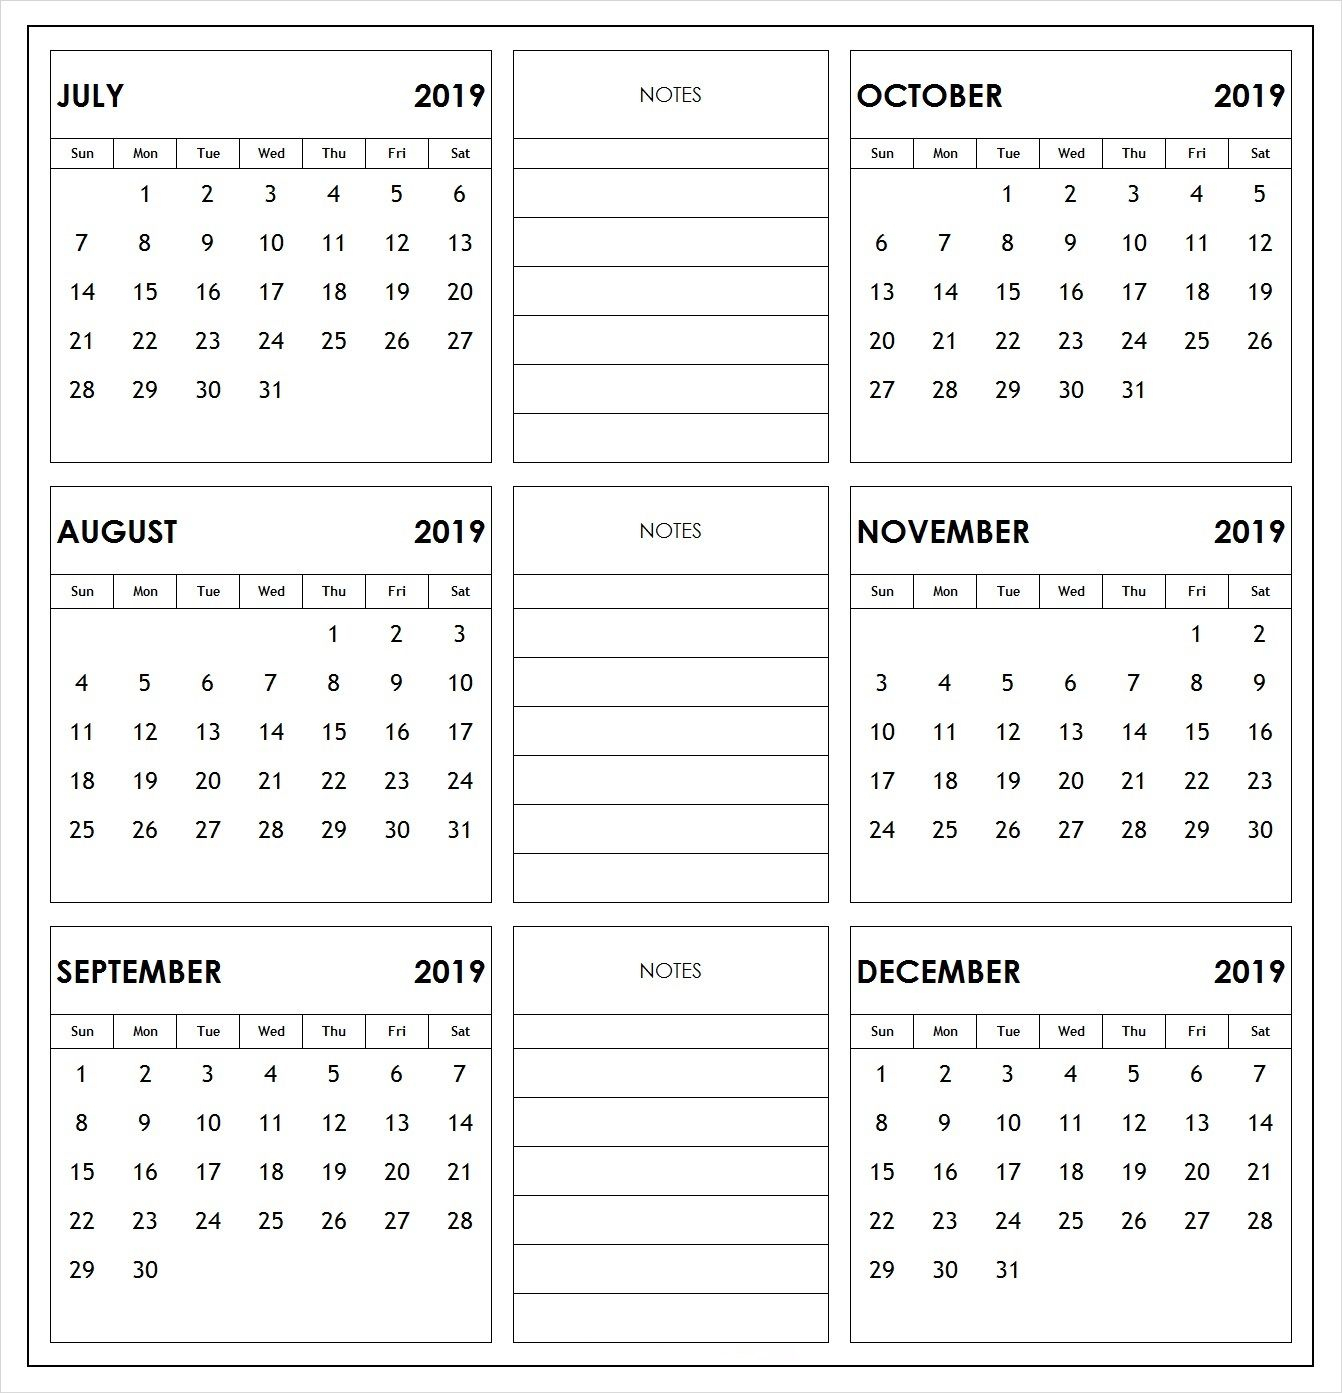 2019 6 Months Half Year Calendar Printable Download intended for Printable 6 Month Calendar